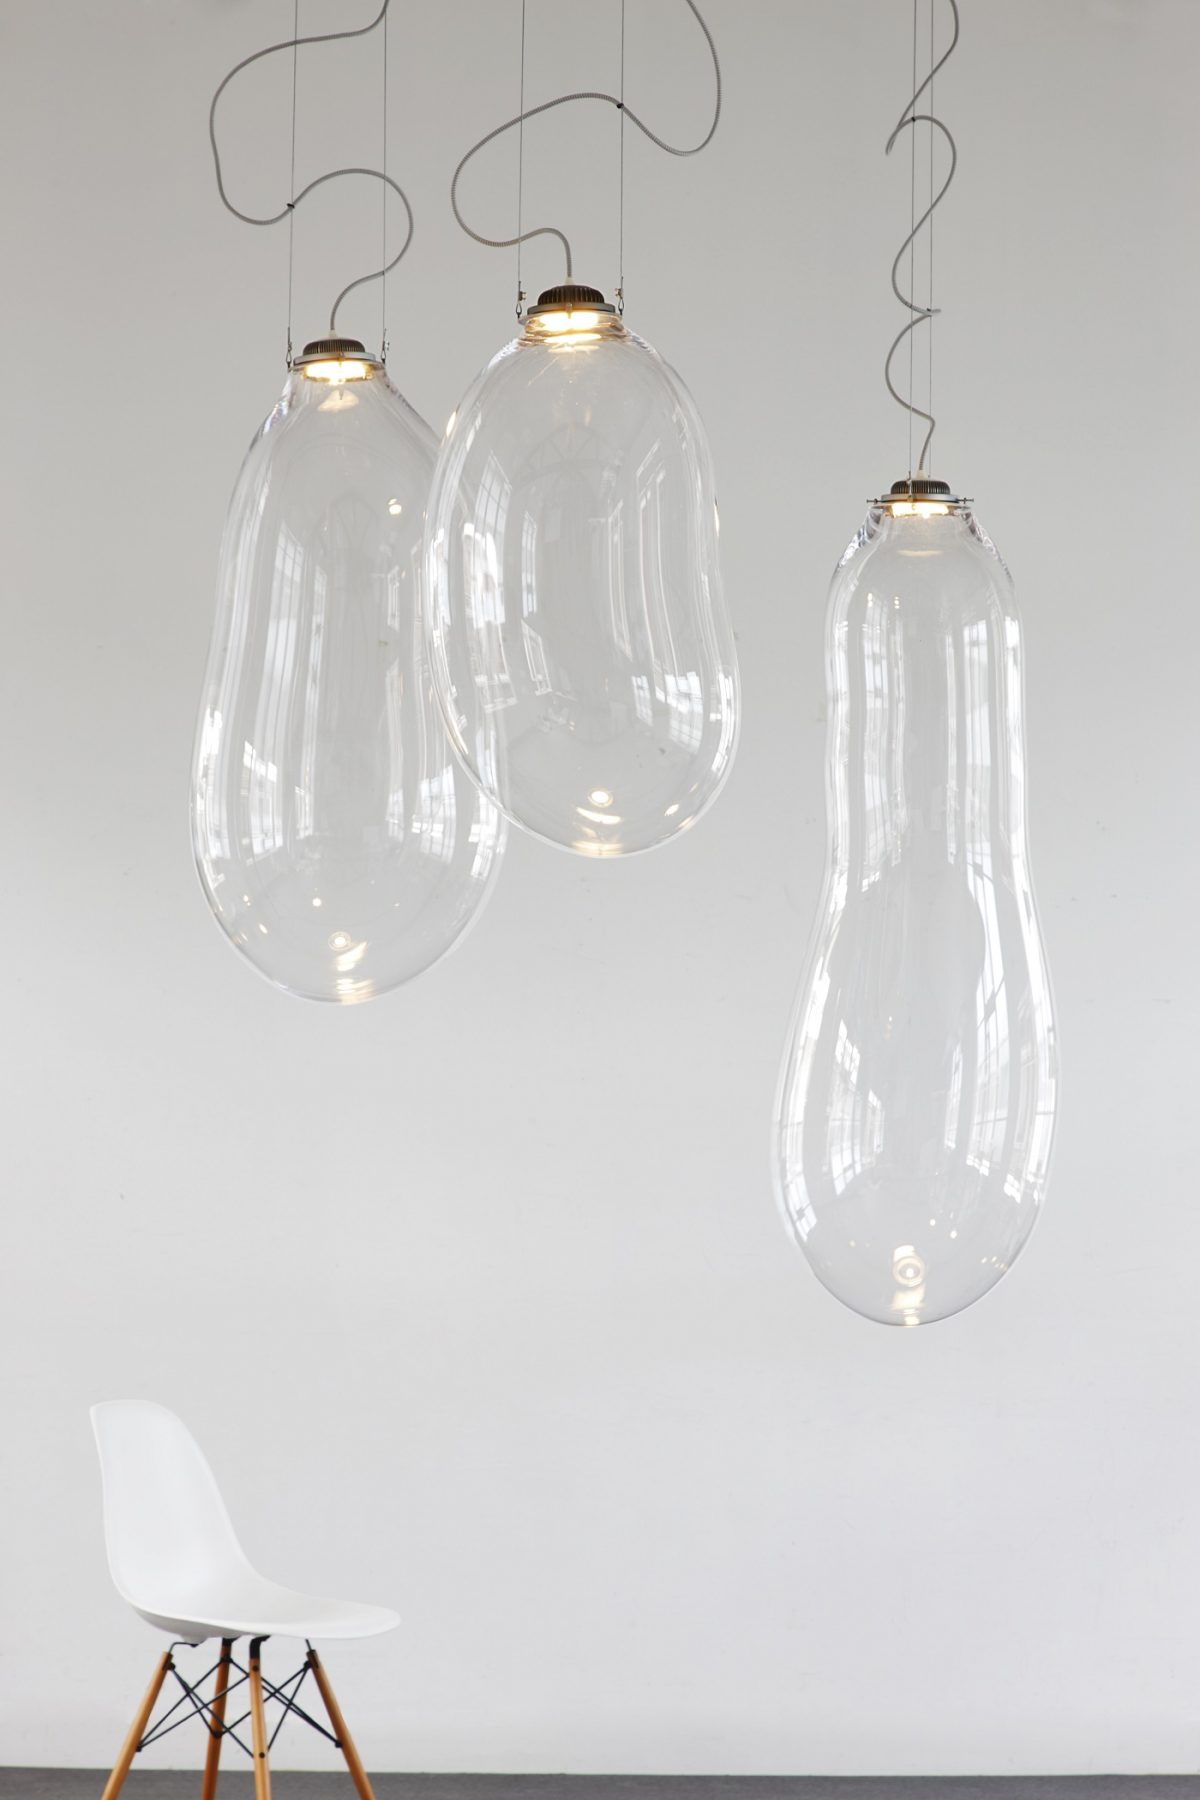 Big Bubble hanglamp Alex de Witte